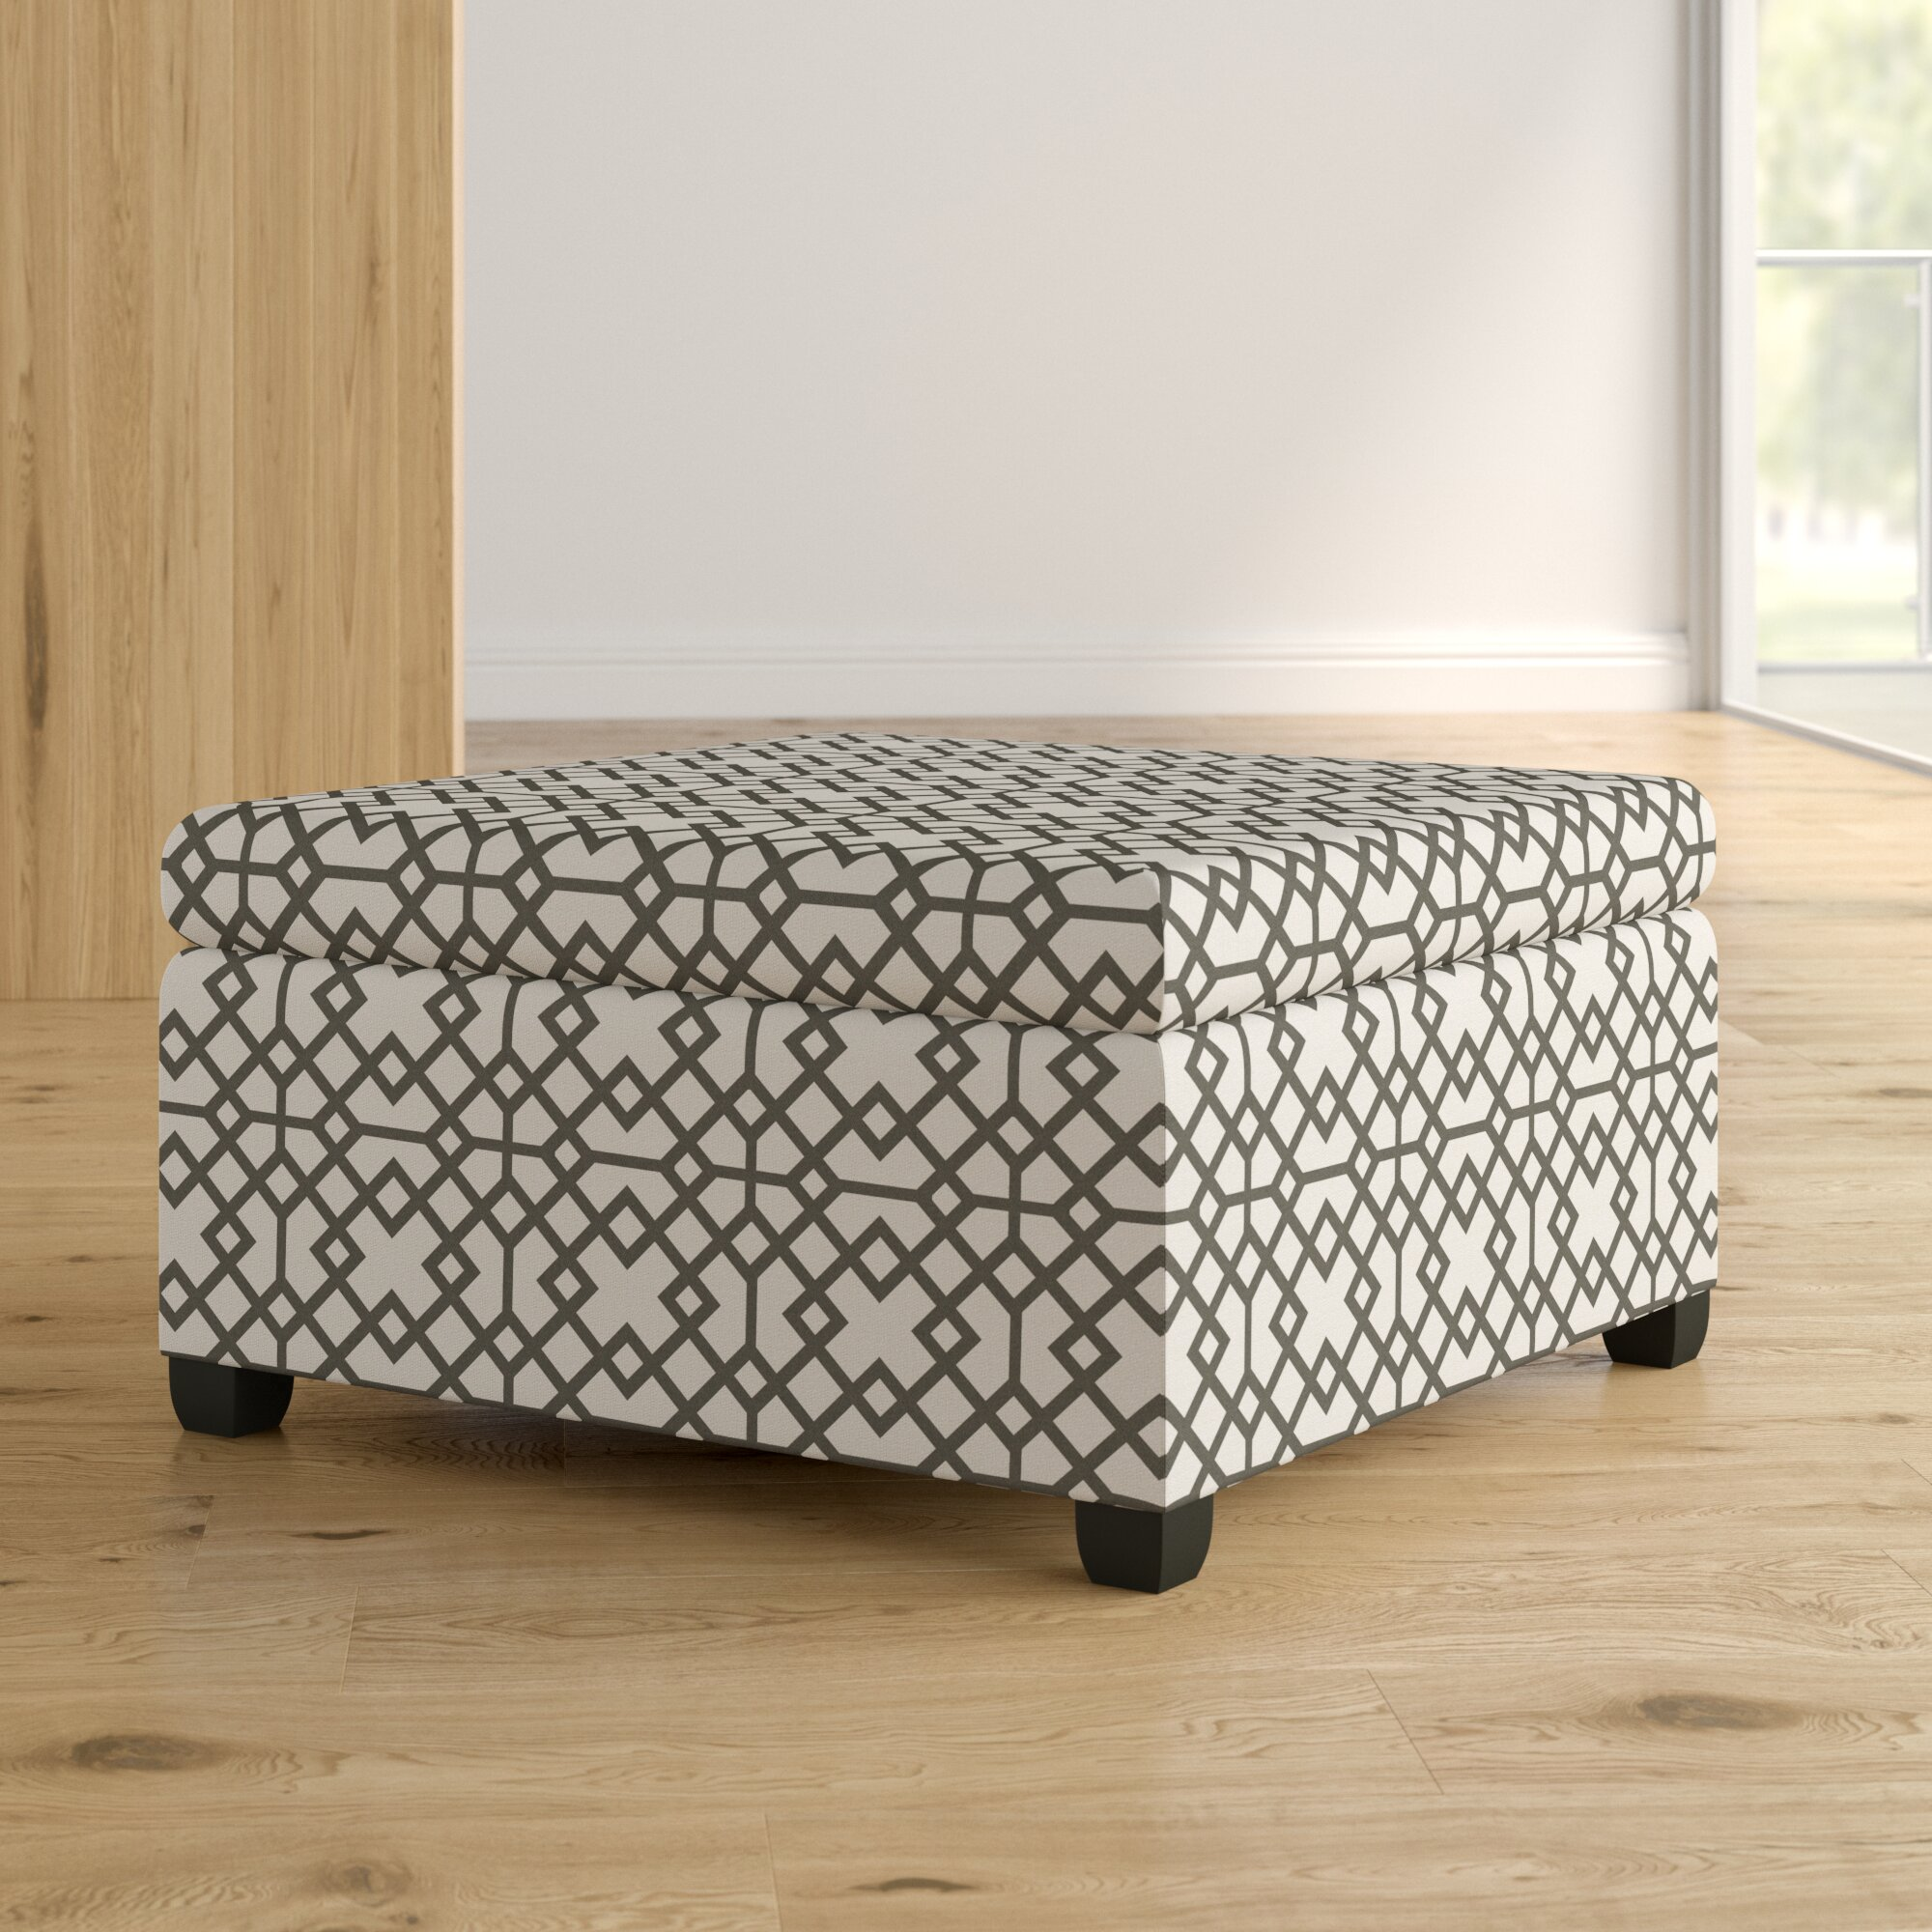 Miraculous Ebern Designs Stas Storage Ottoman Reviews Wayfair Pdpeps Interior Chair Design Pdpepsorg